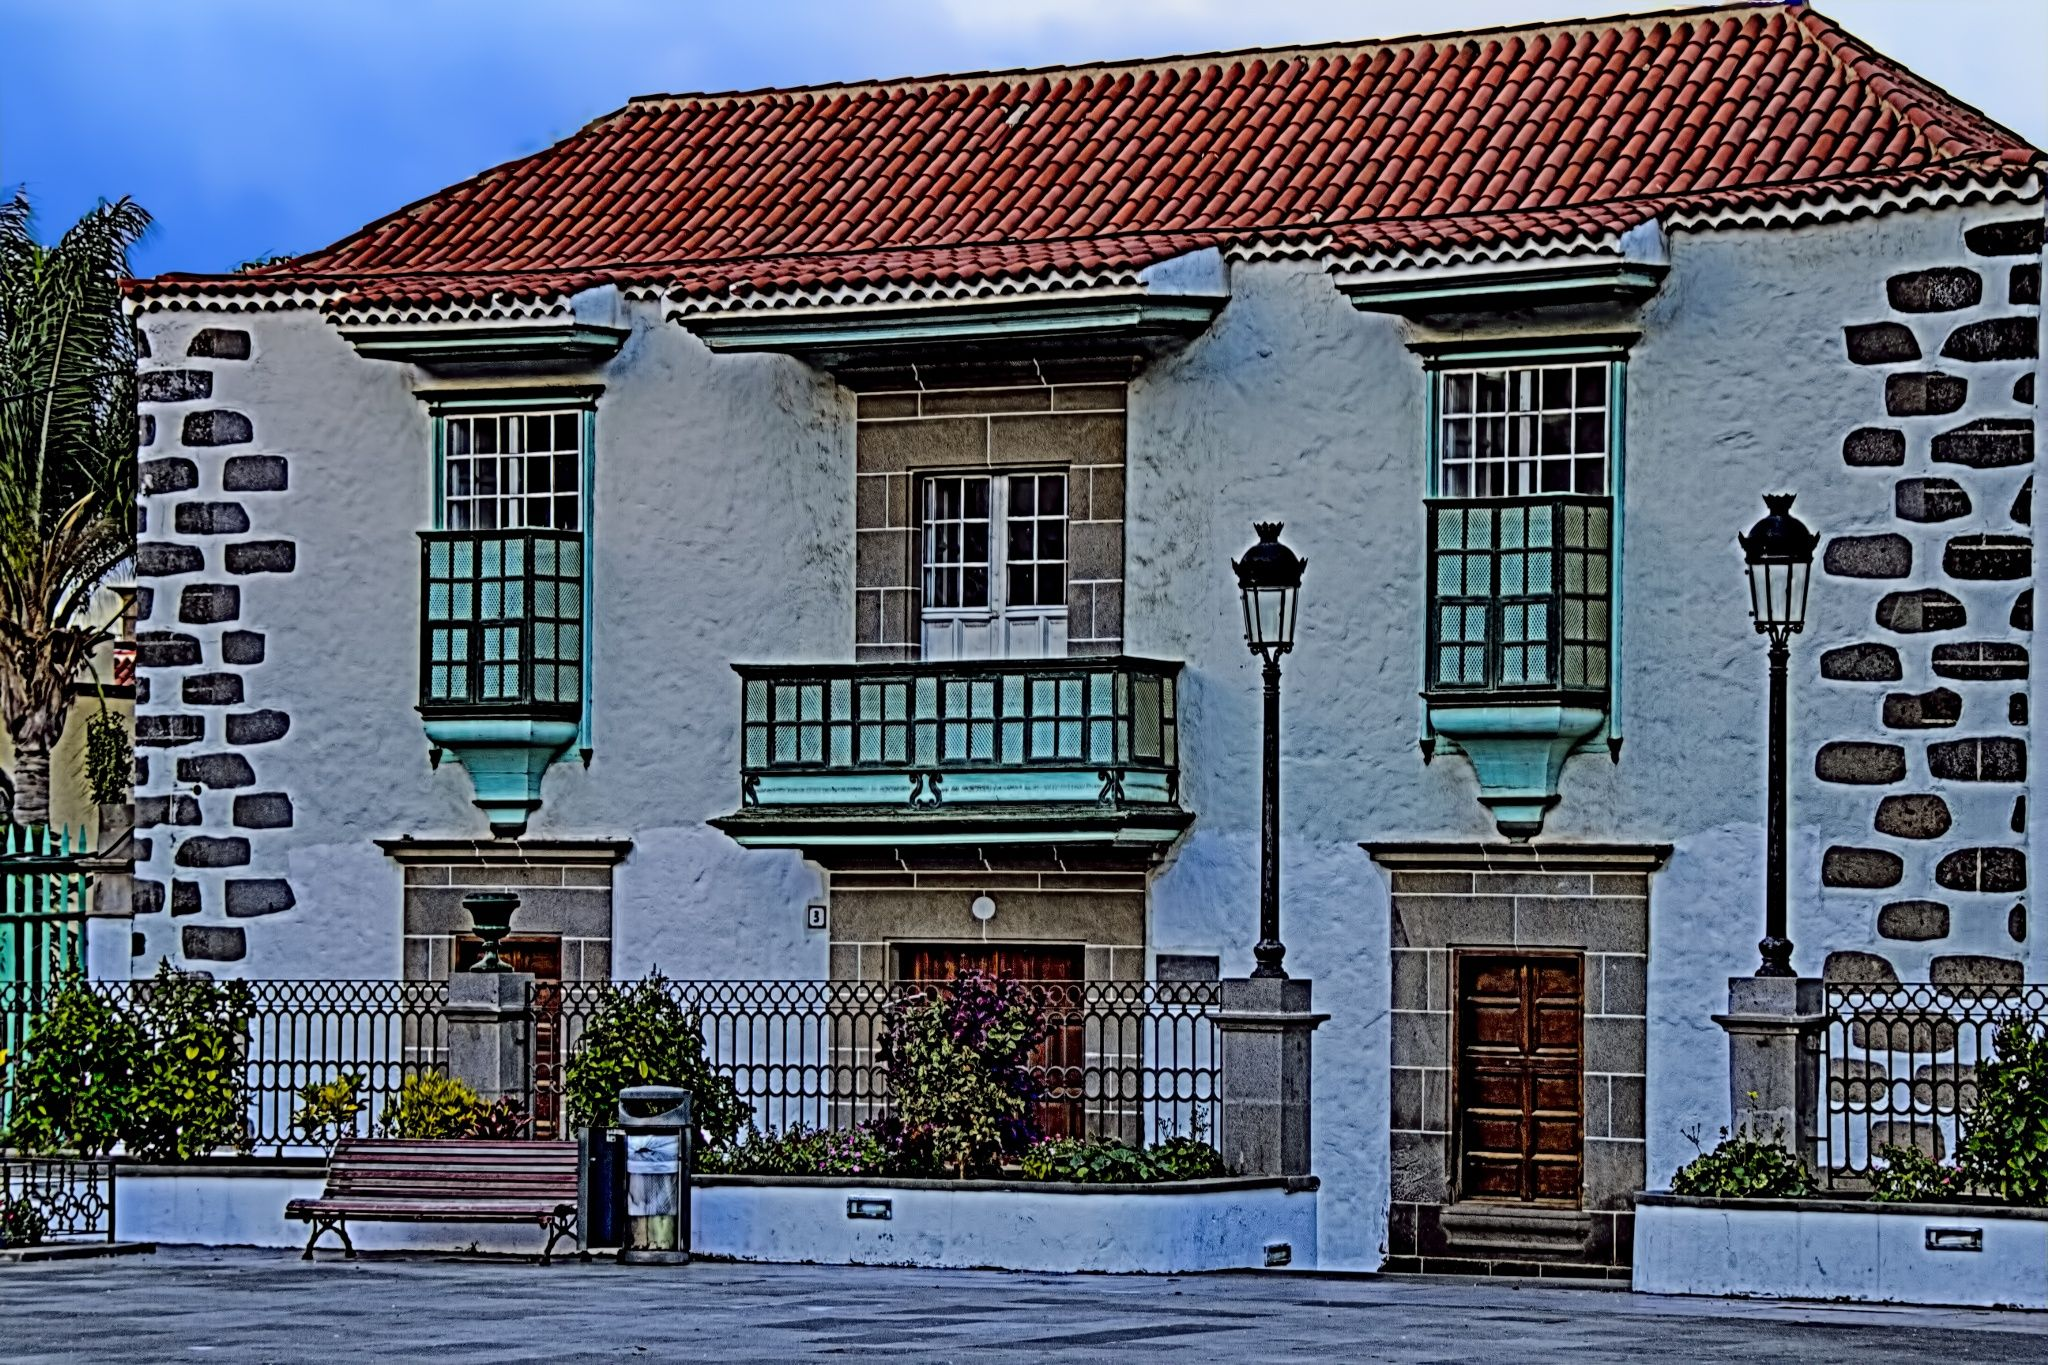 Canarian house by Miguel Diaz Ojeda on 500px